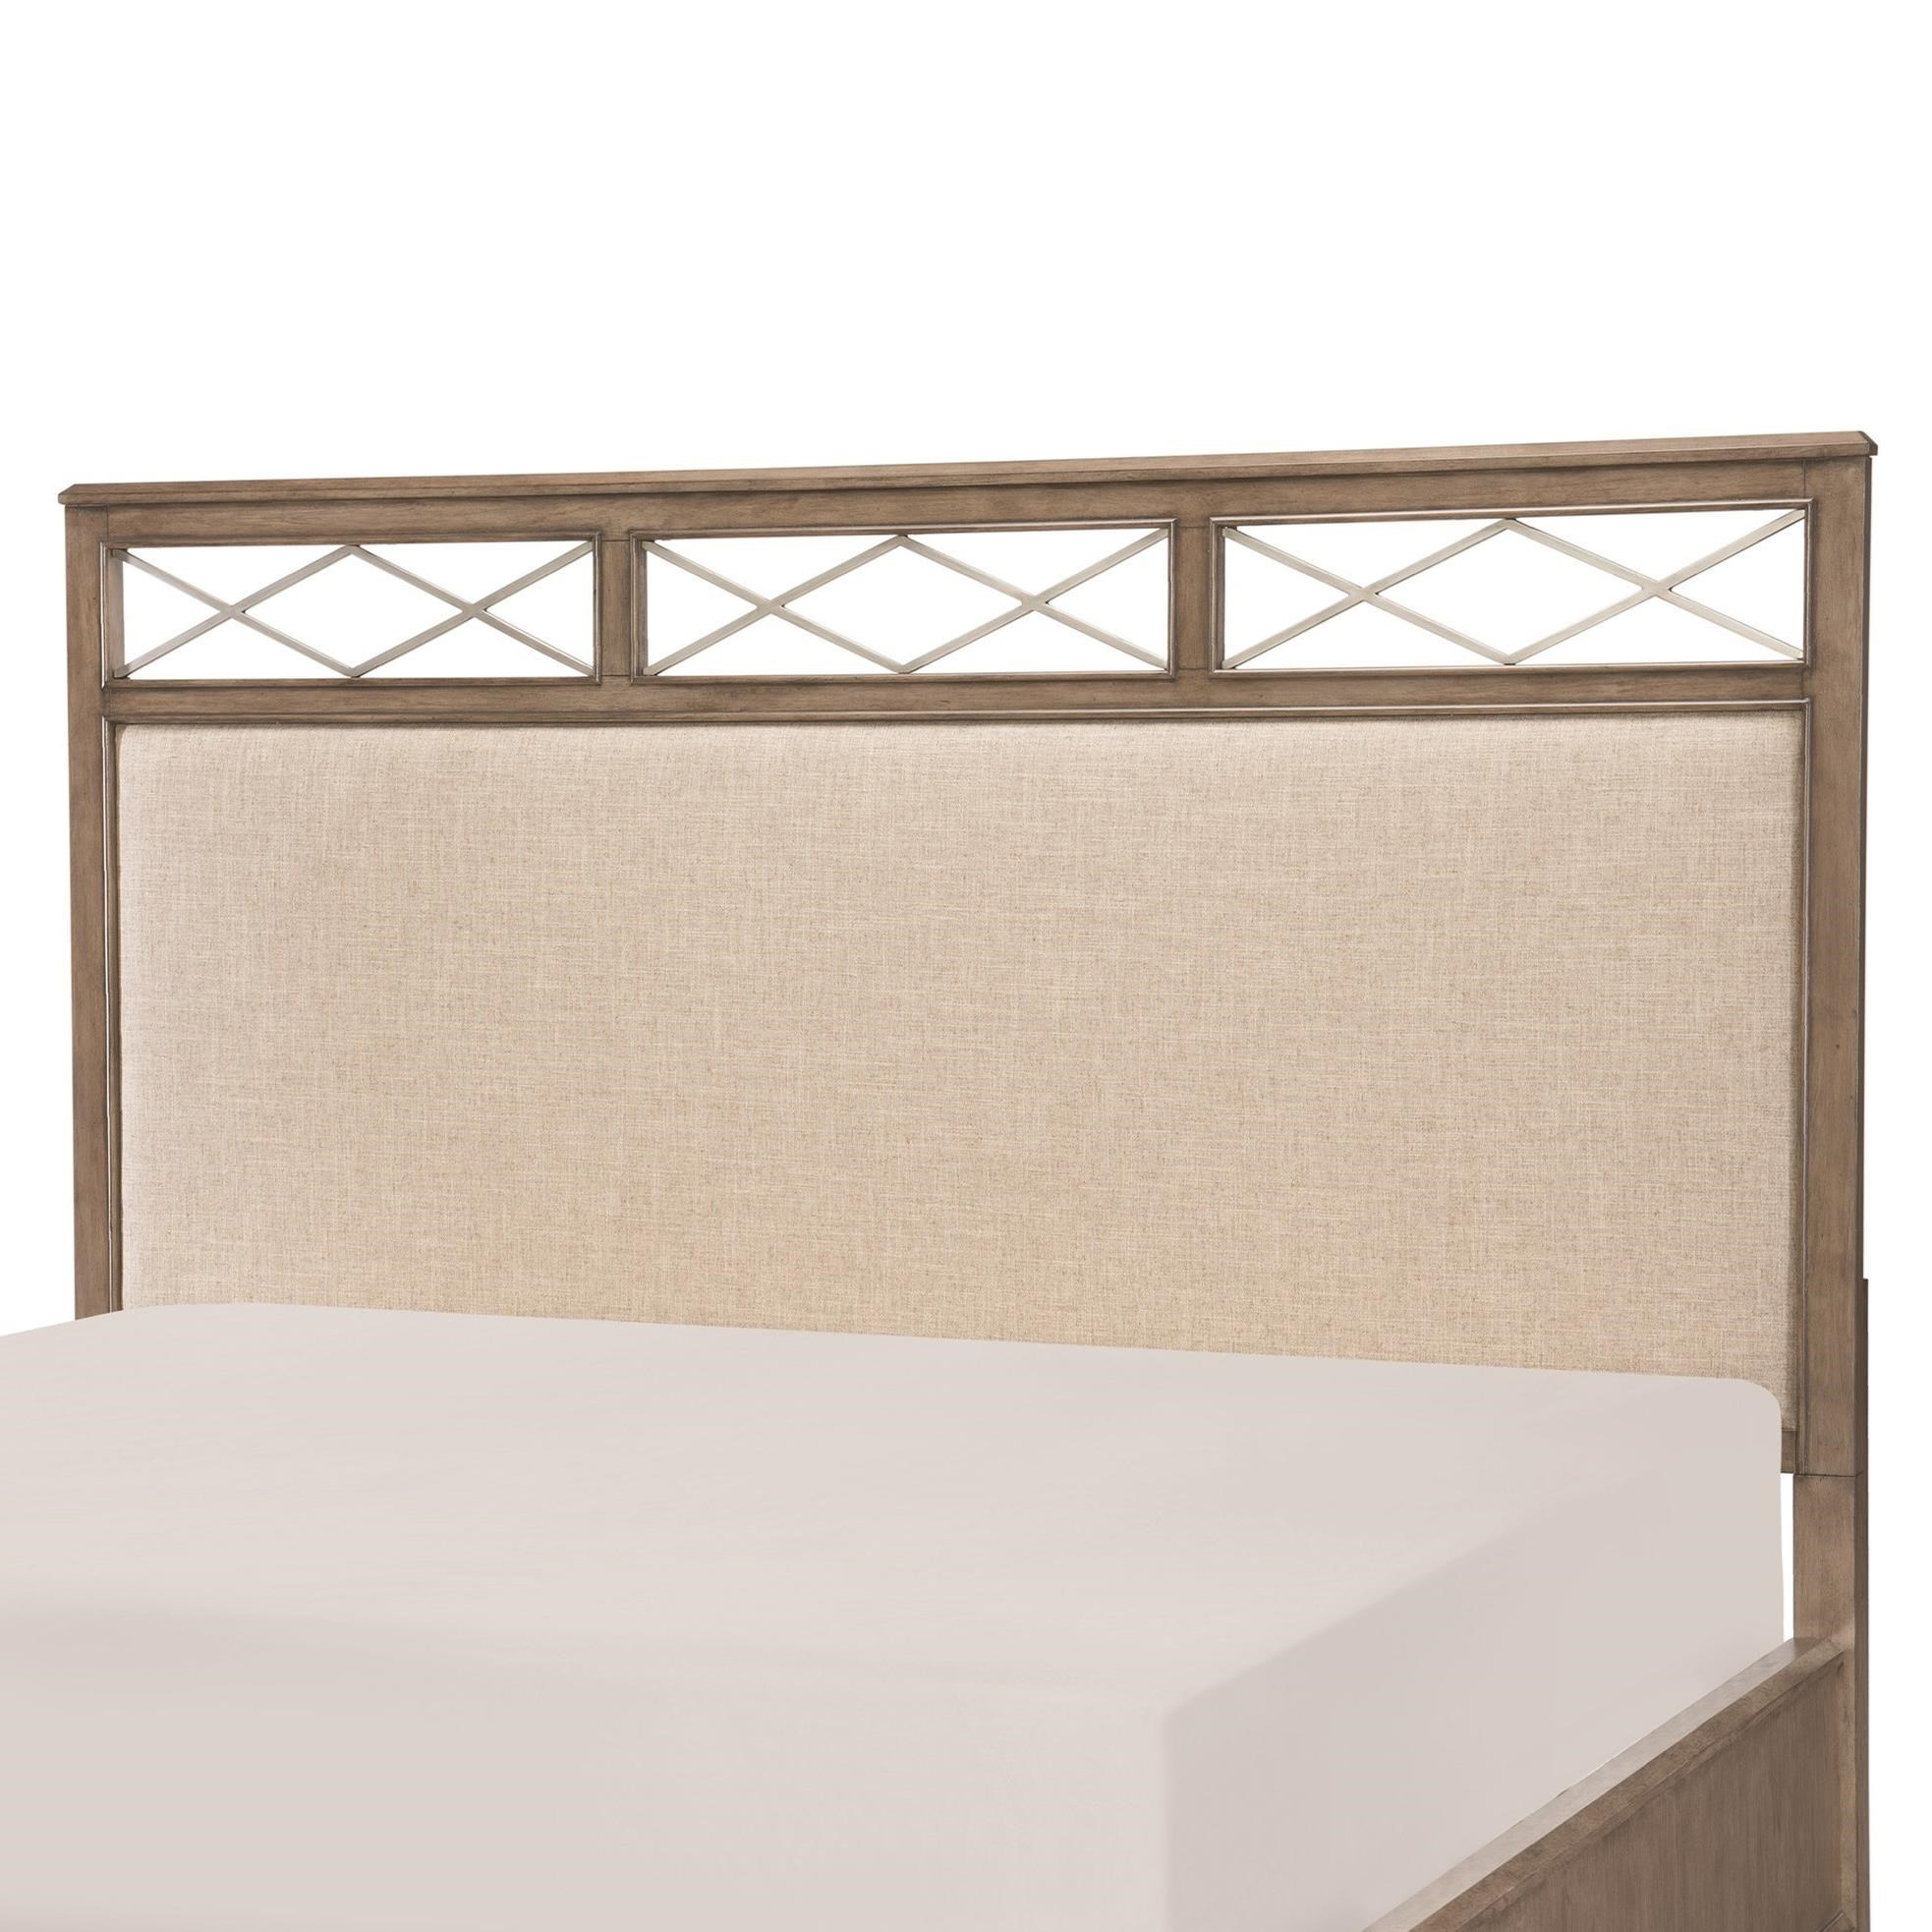 Legacy Classic Apex Queen Upholstered Platform Headboard - Item Number: 7700-4405